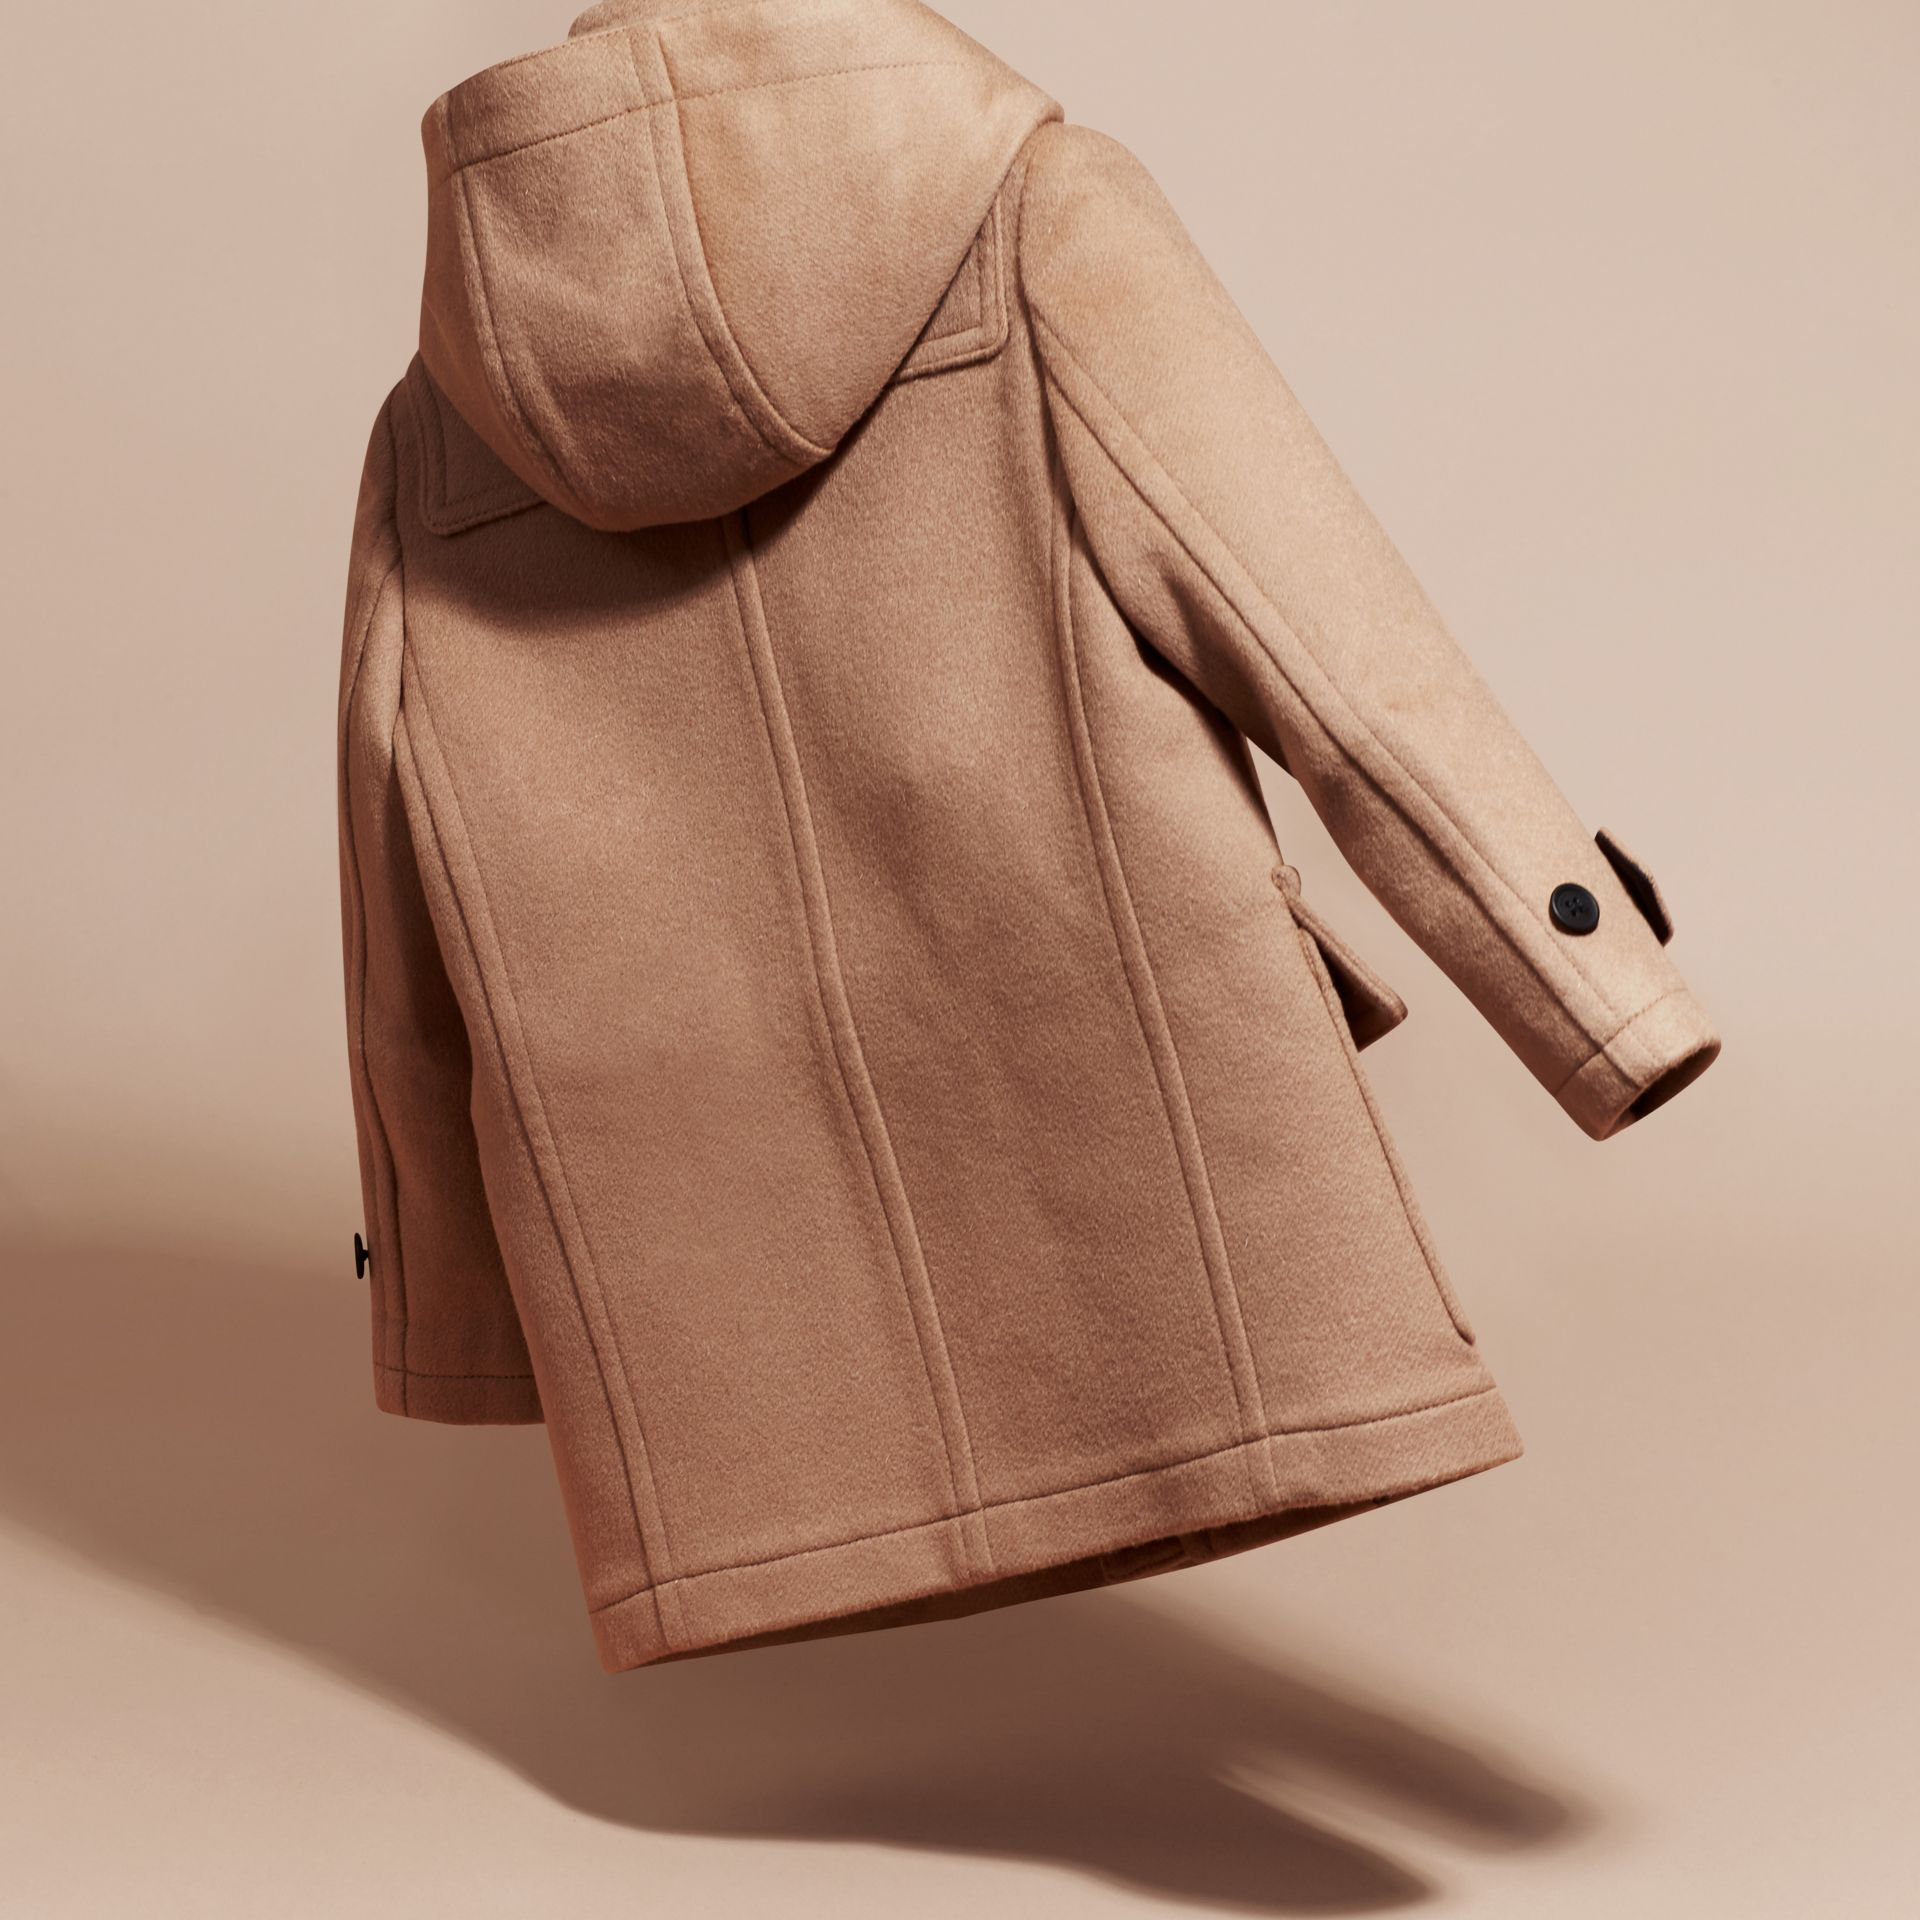 New camel Wool Duffle Coat with Check-lined Hood New Camel - gallery image 4